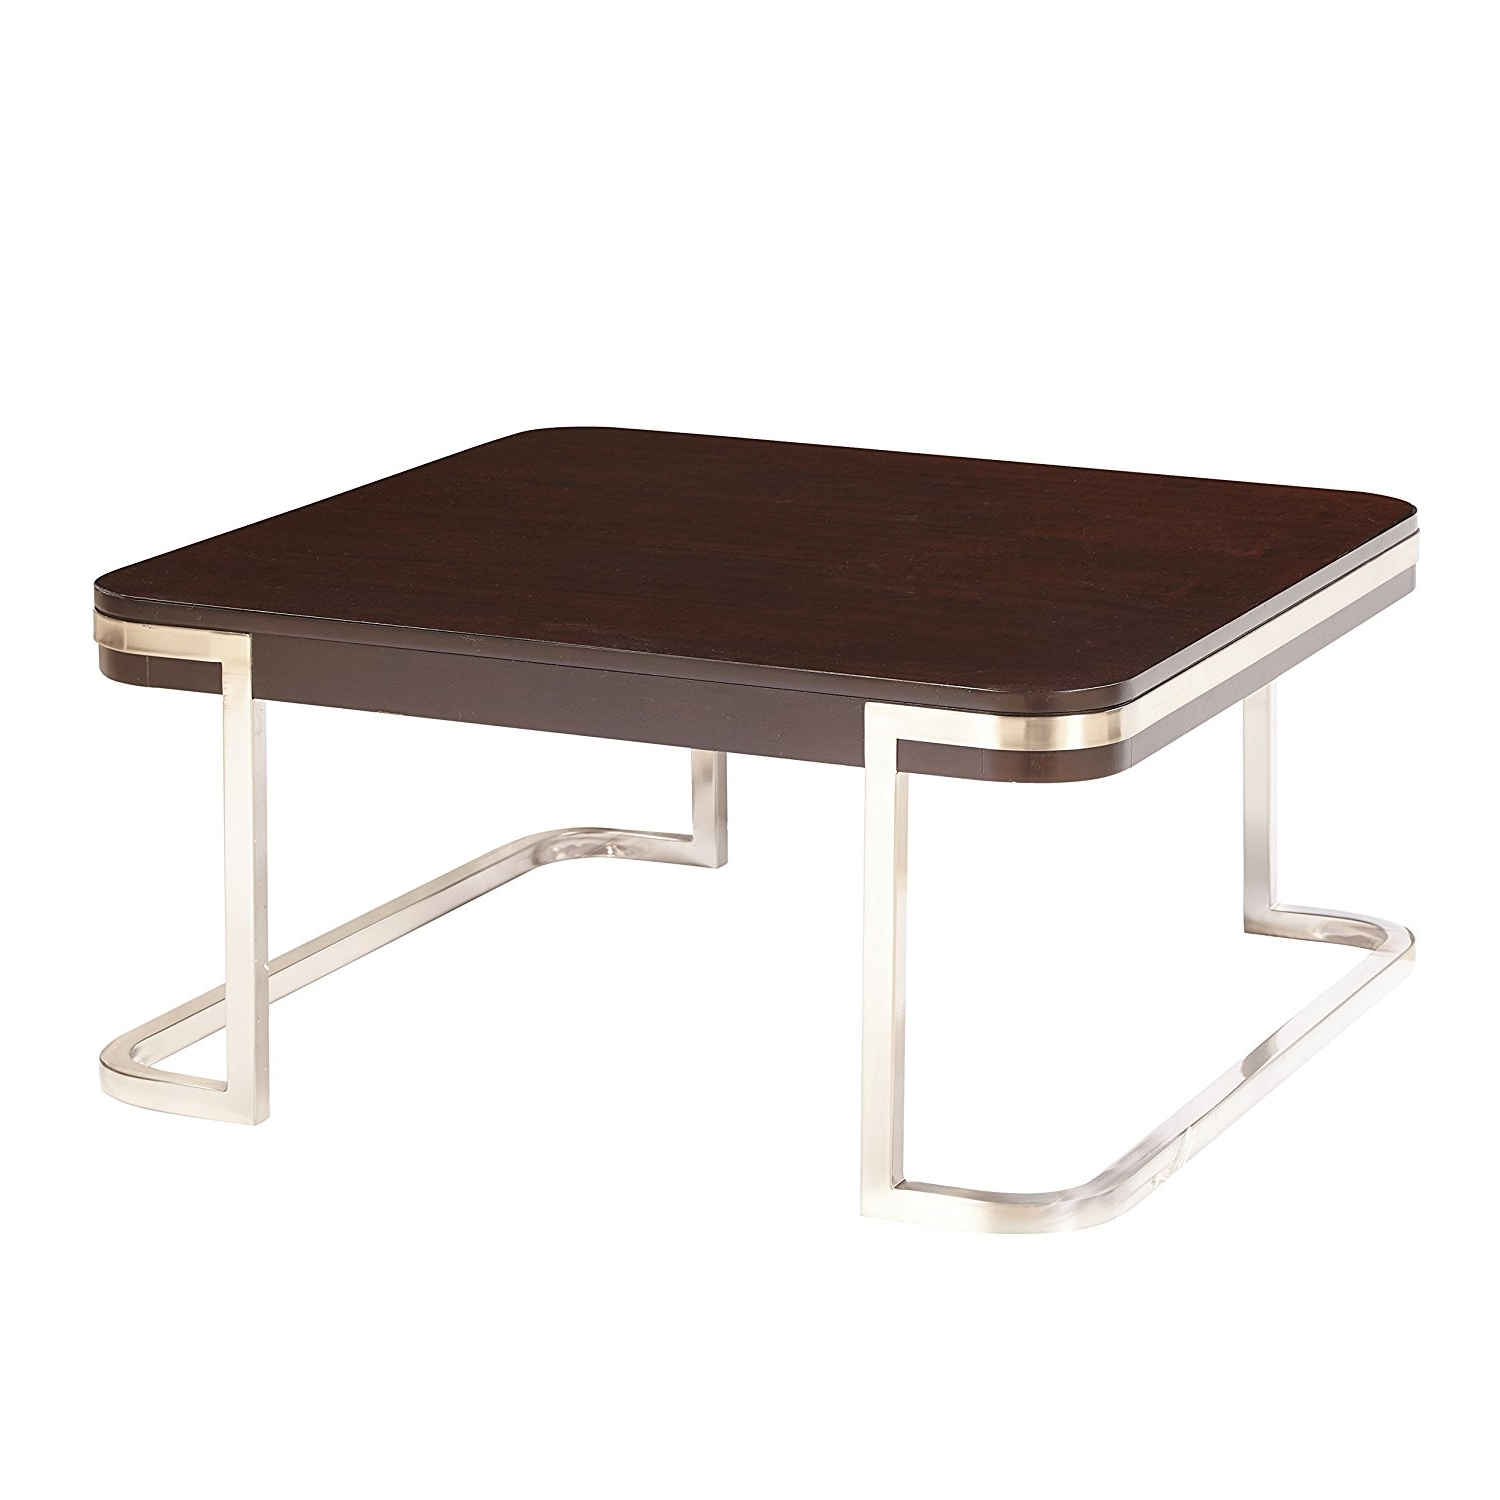 2018 Verona Cocktail Tables With Cheap Cocktail Table Square, Find Cocktail Table Square Deals On (Gallery 17 of 20)